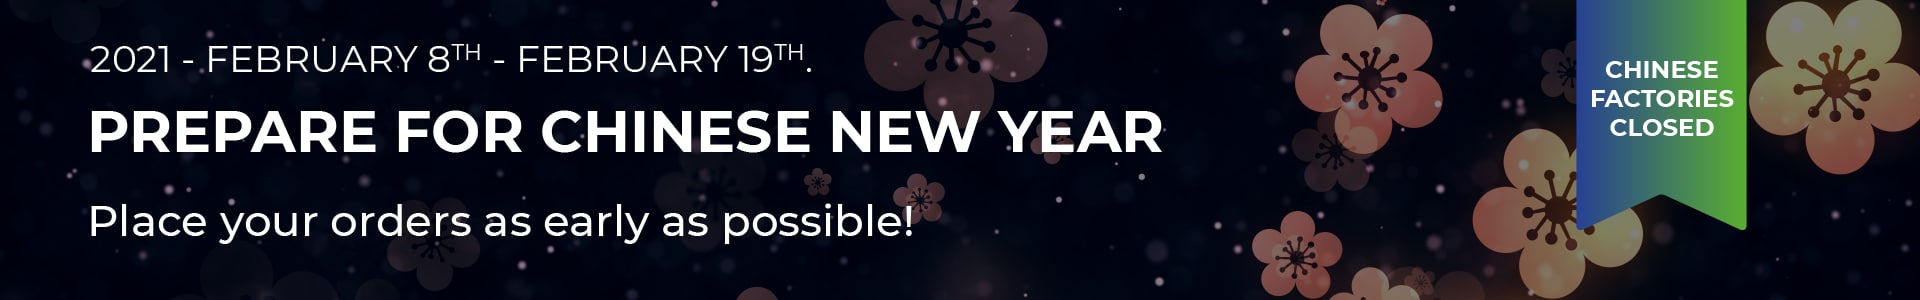 banner-chinese-newyear-orders-8-19-v2